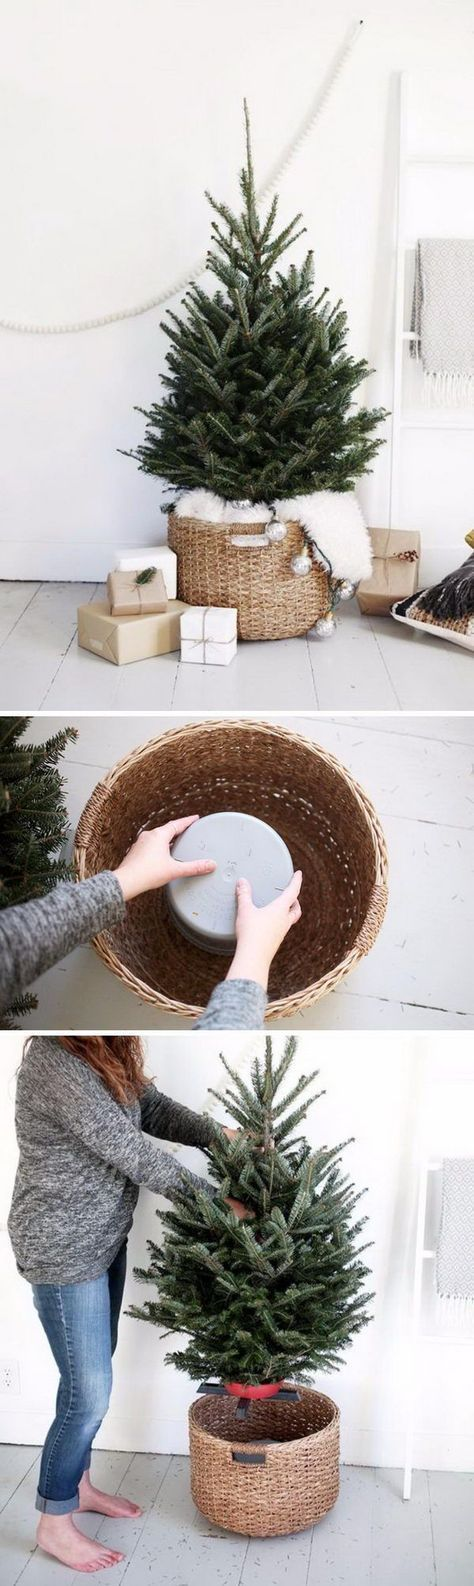 DIY Christmas Tree Stand Using Bucket Upside Down In A Large Basket. #christmastreedecoration